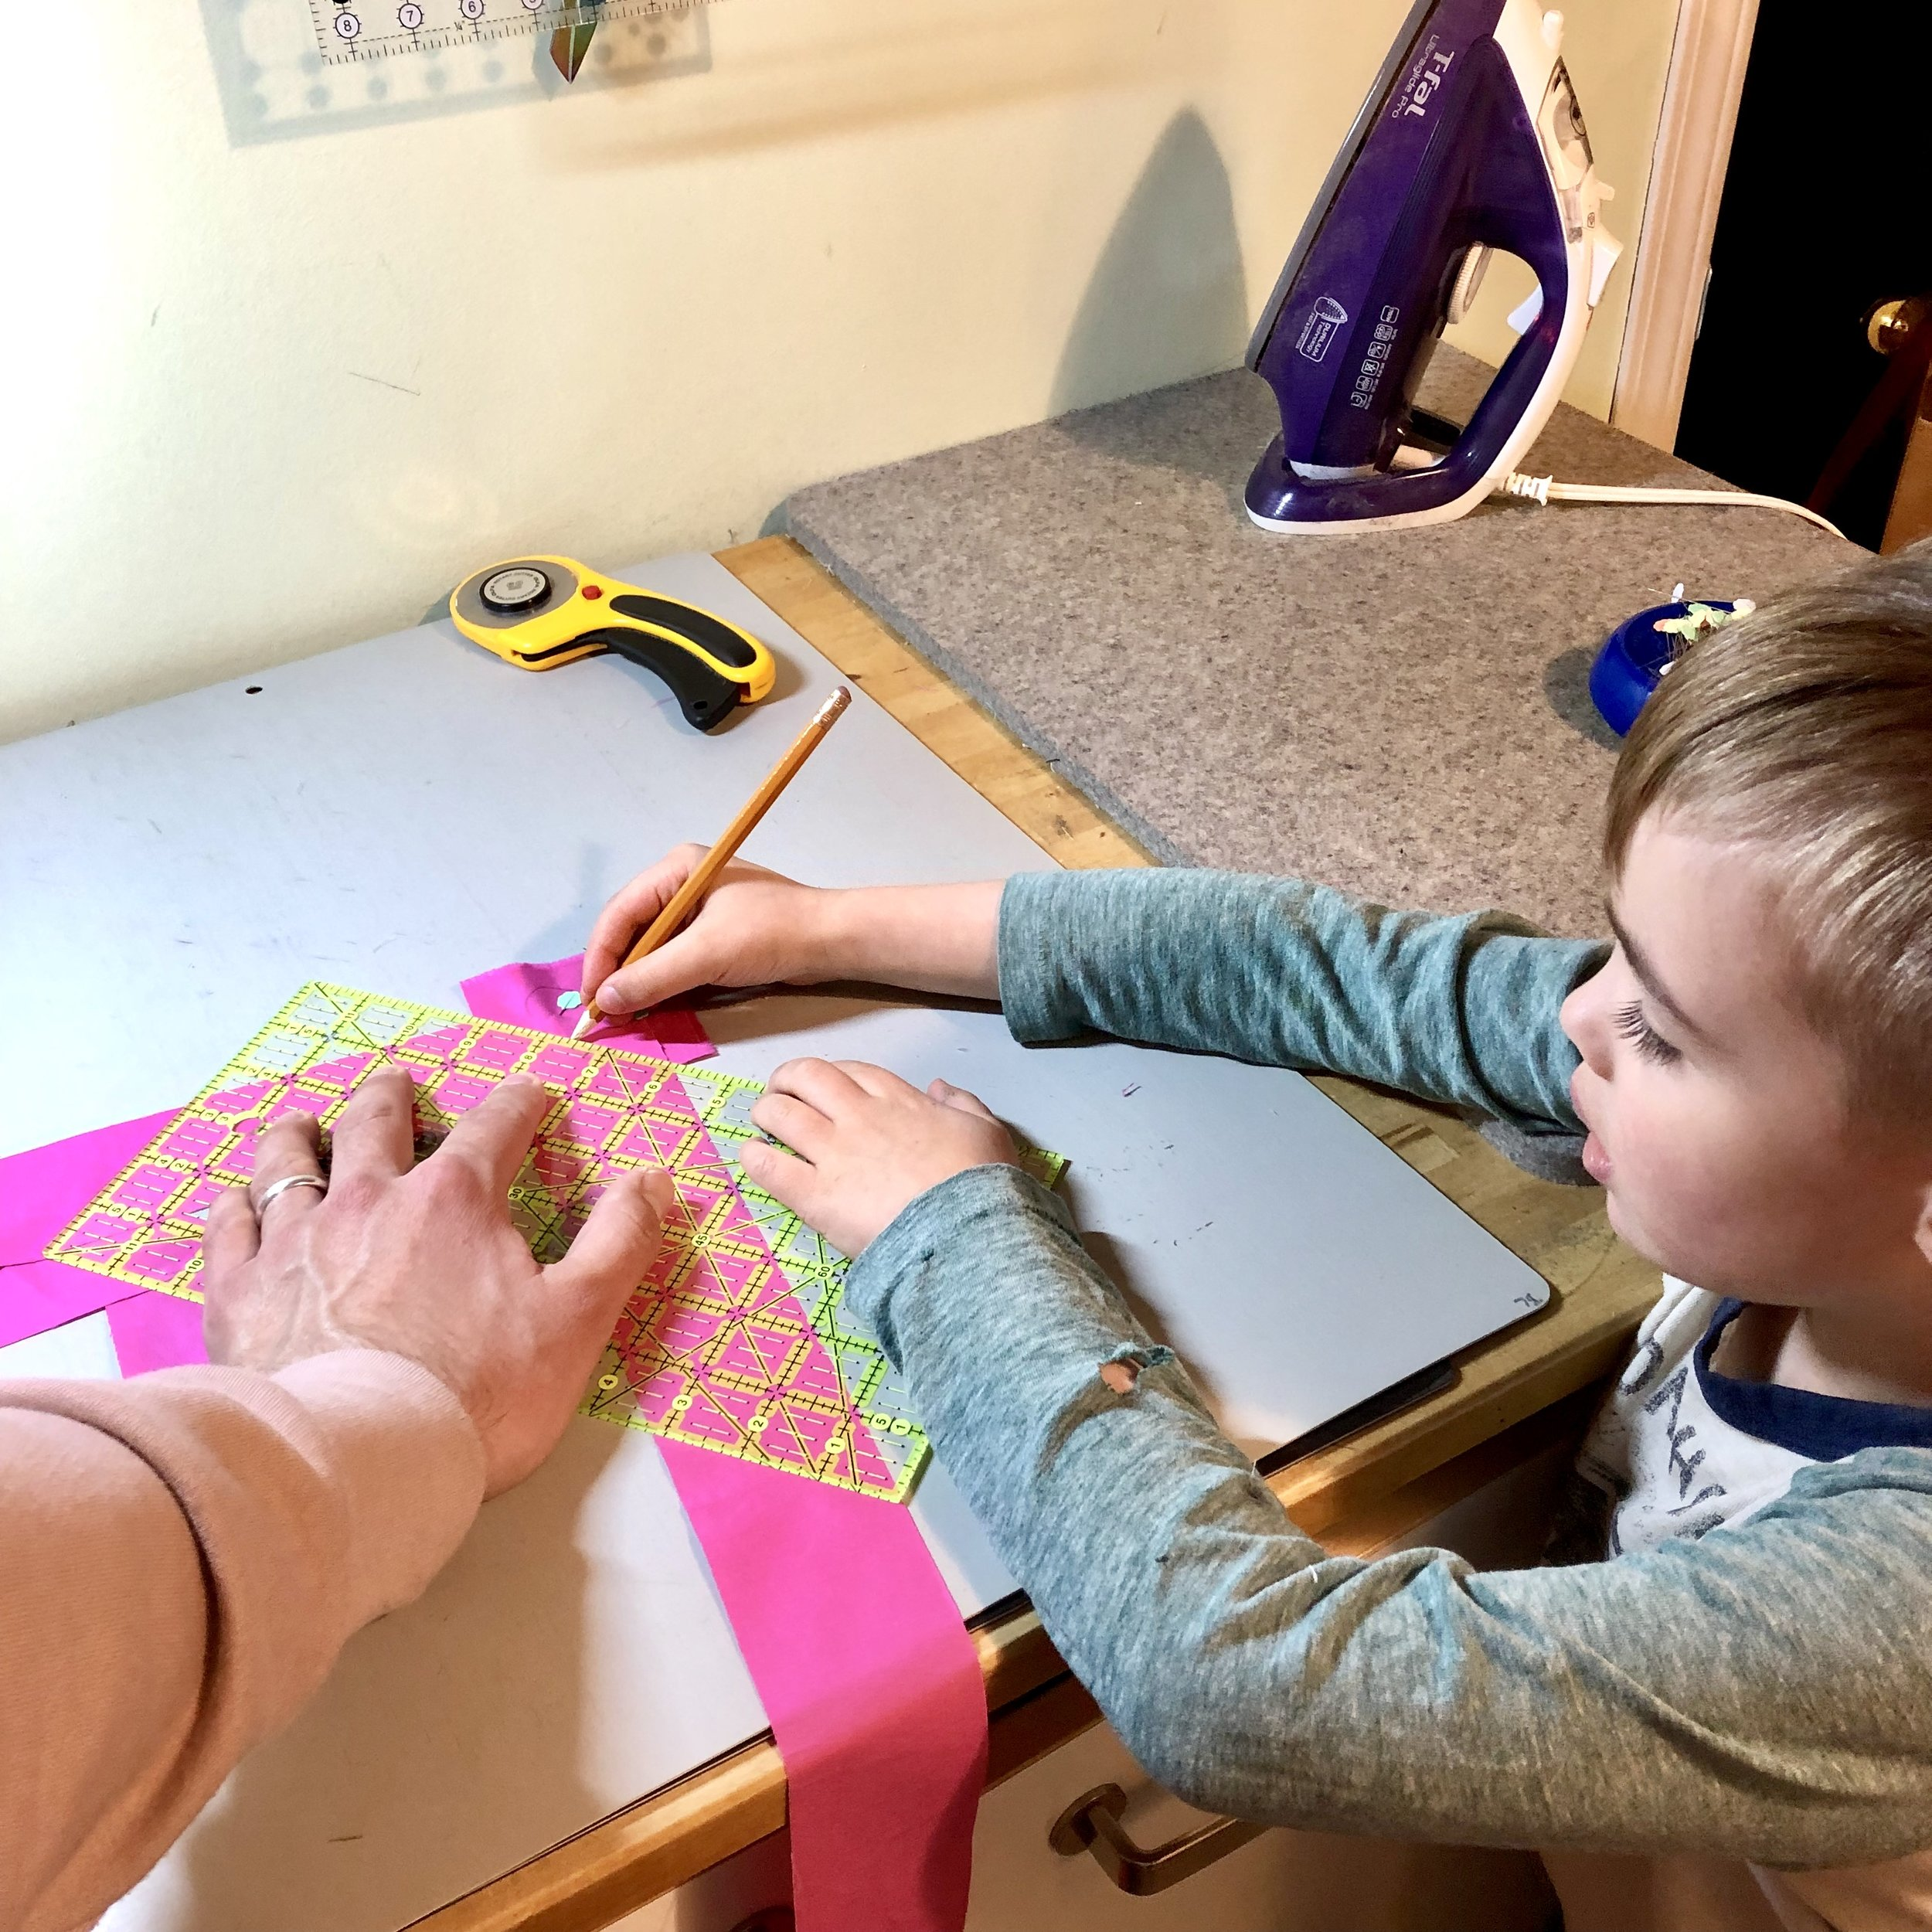 Engaging Your Family in Quilting - By Jessica plunkett